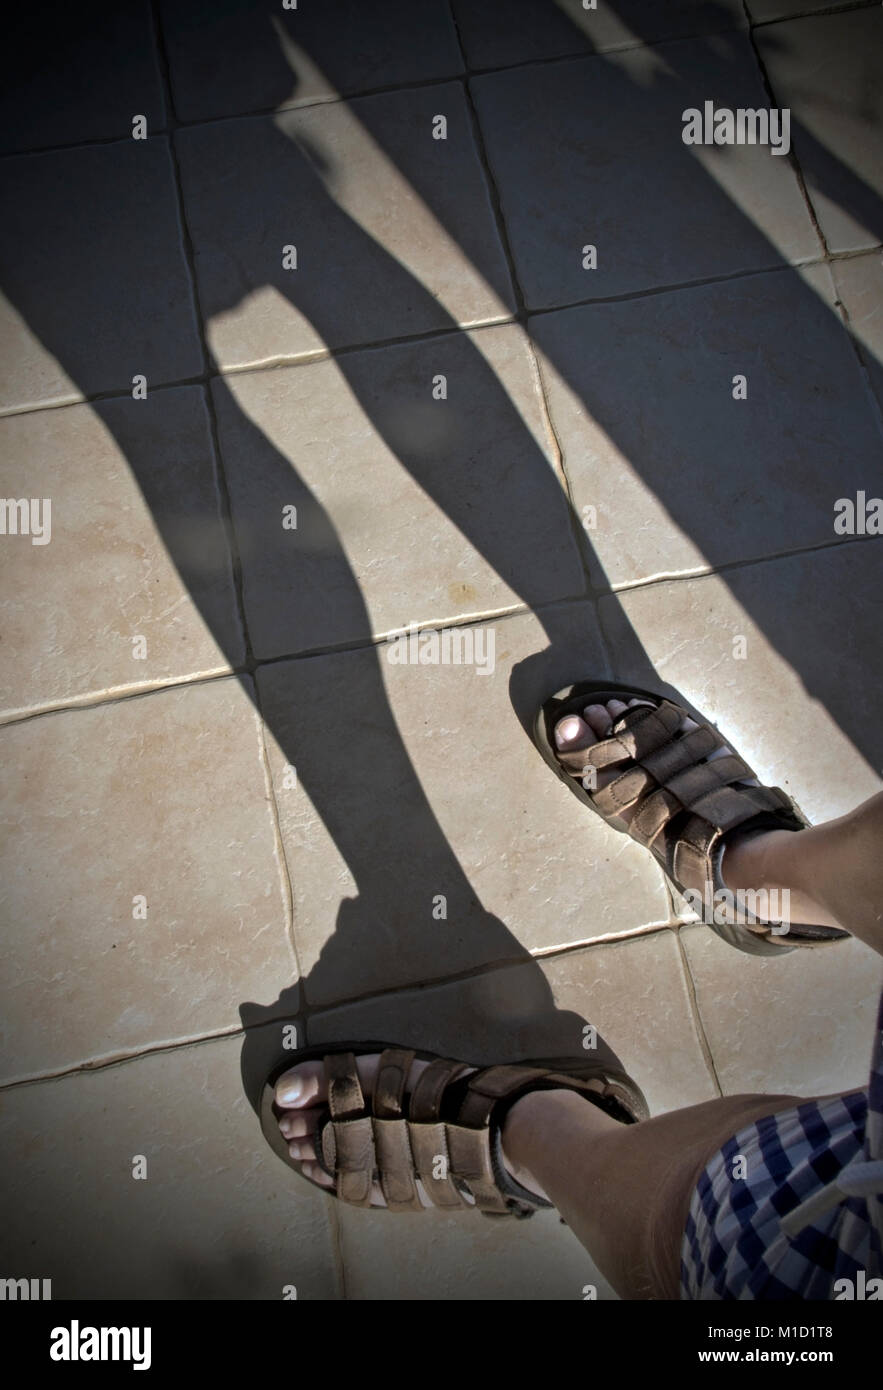 shadow from legs and feet in sandals - Stock Image